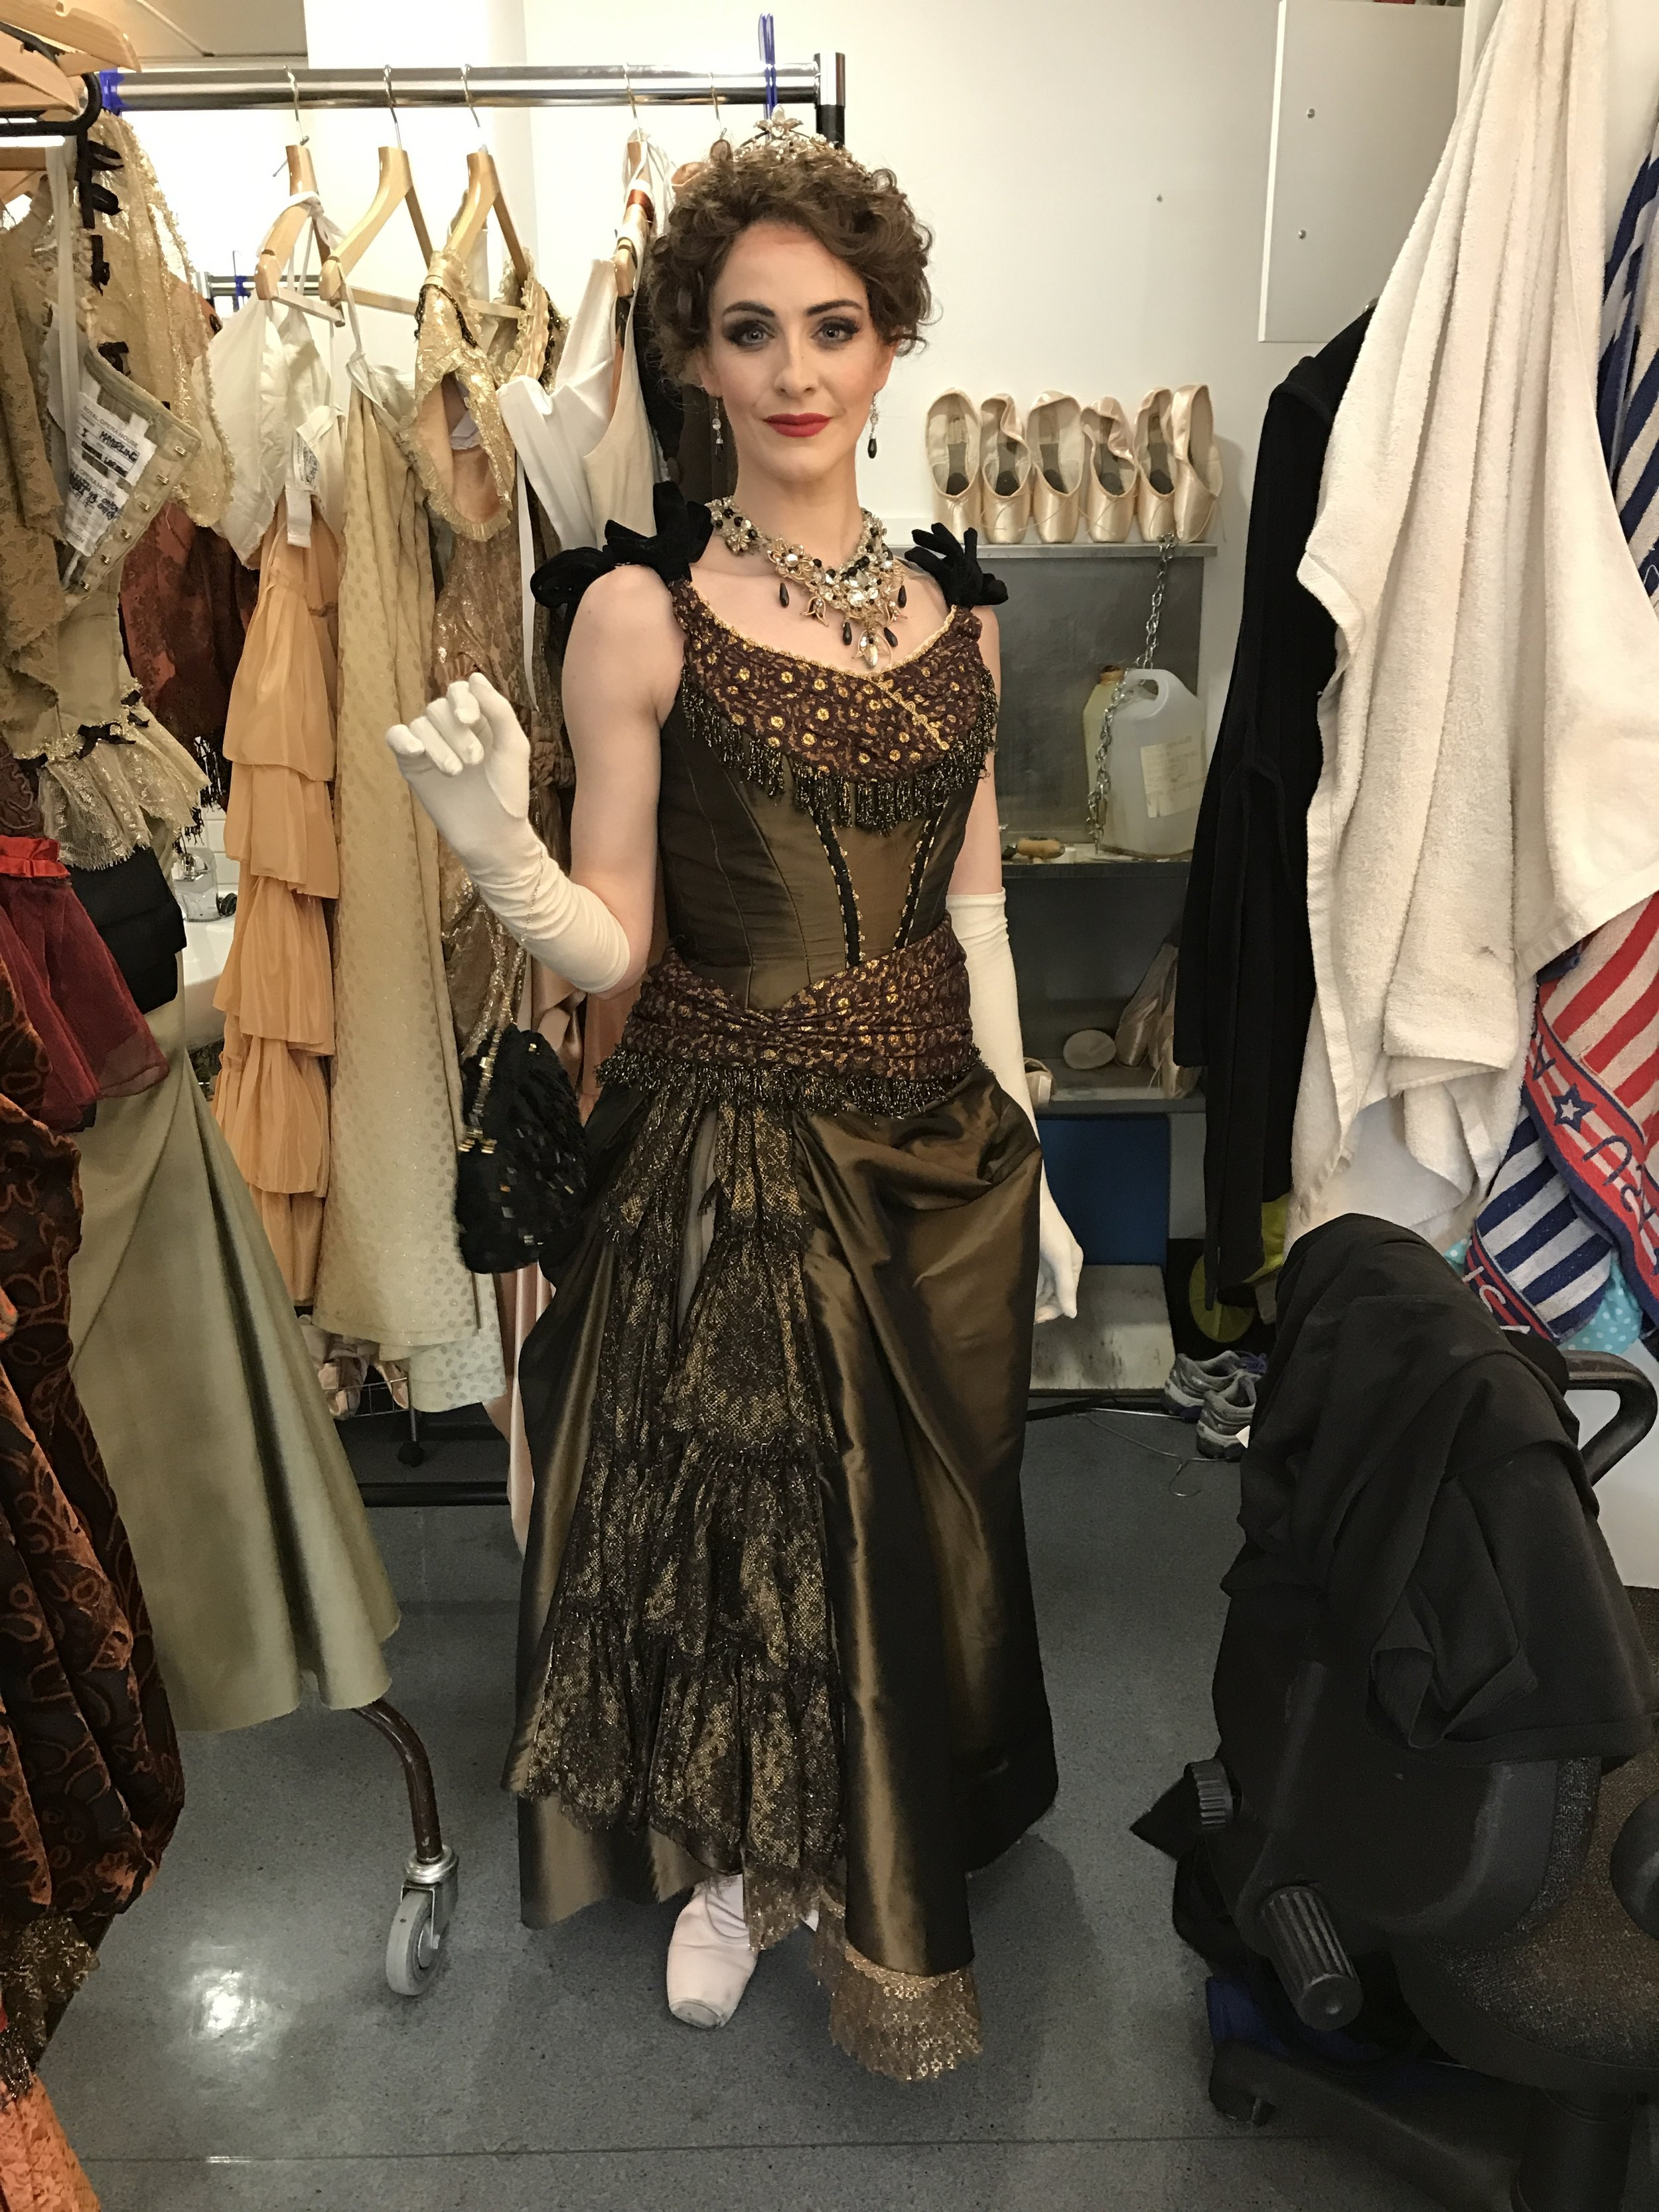 ACT TWO, HOFFBURG SCENE. MY FIRST QUICK CHANGE FROM CARD SCENE. AS I HAVE A VERY SHORT TIME TO DO THIS, I DO THIS QUICK CHANGE IN THE WINGS RIGHT BY STAGE. ITS TRICKY AS THERE ARE A LOT OF HOOKS AND BARS FOR THIS COSTUME TOO!